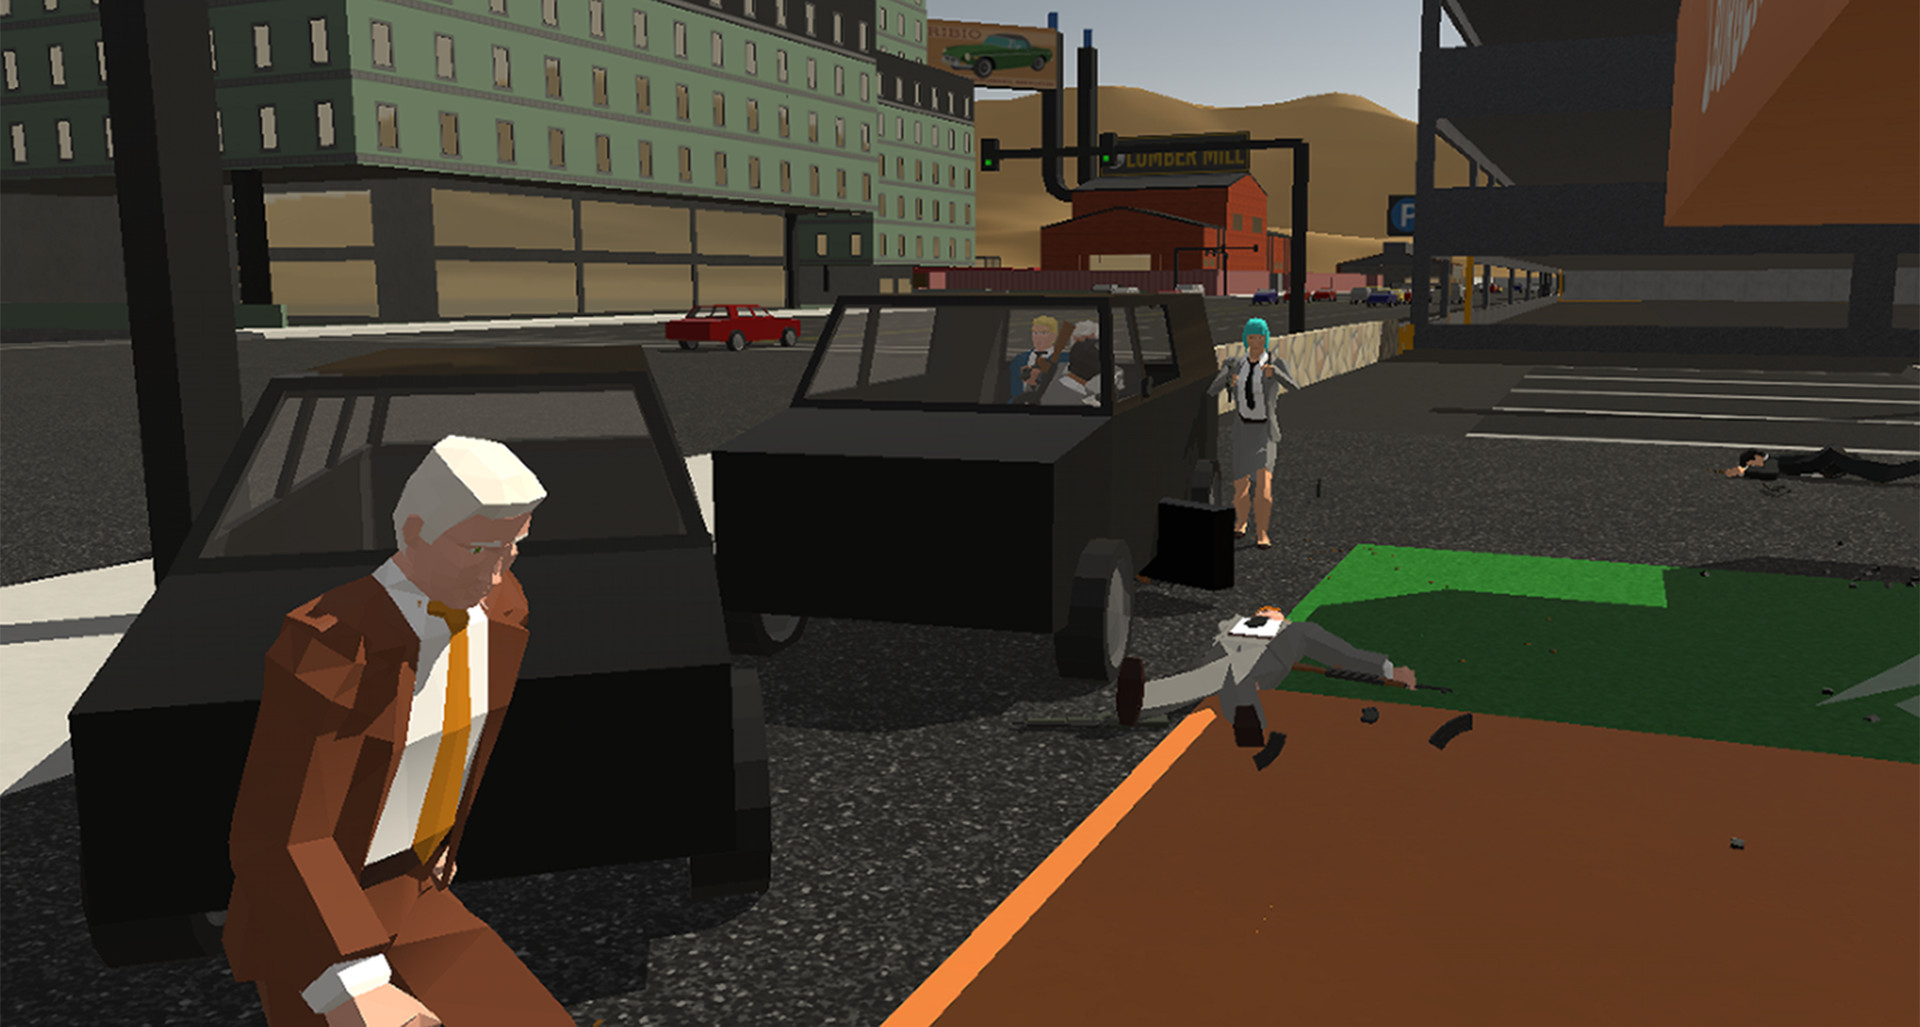 Find the best gaming PC for Sub Rosa